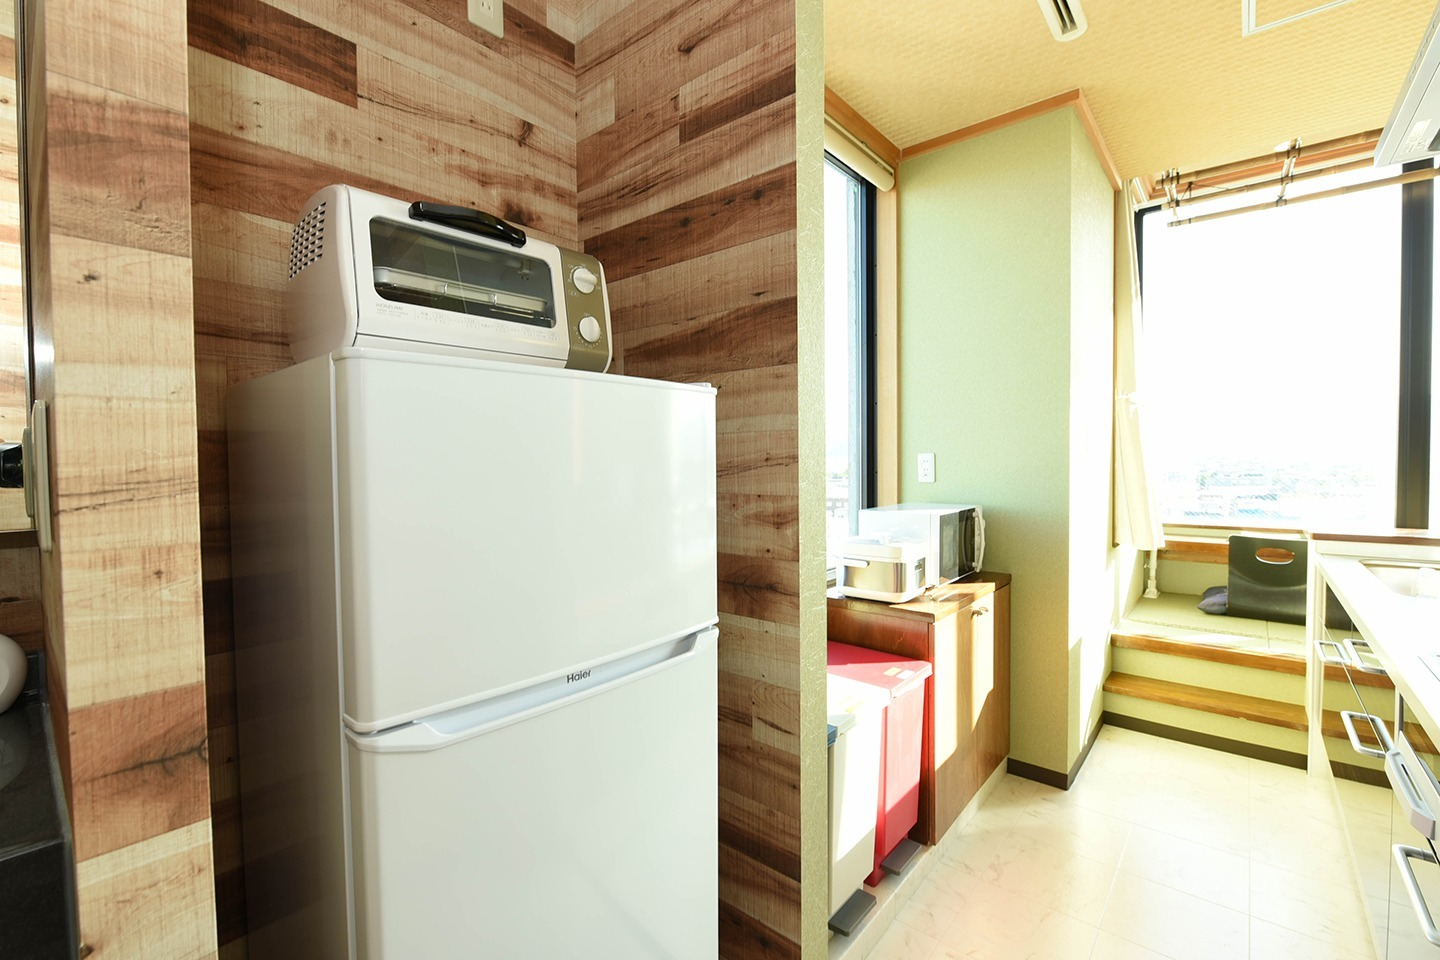 Refrigerator. Toaster and microwave will help you warm up your food 冷蔵庫、トースターと電子レンジ